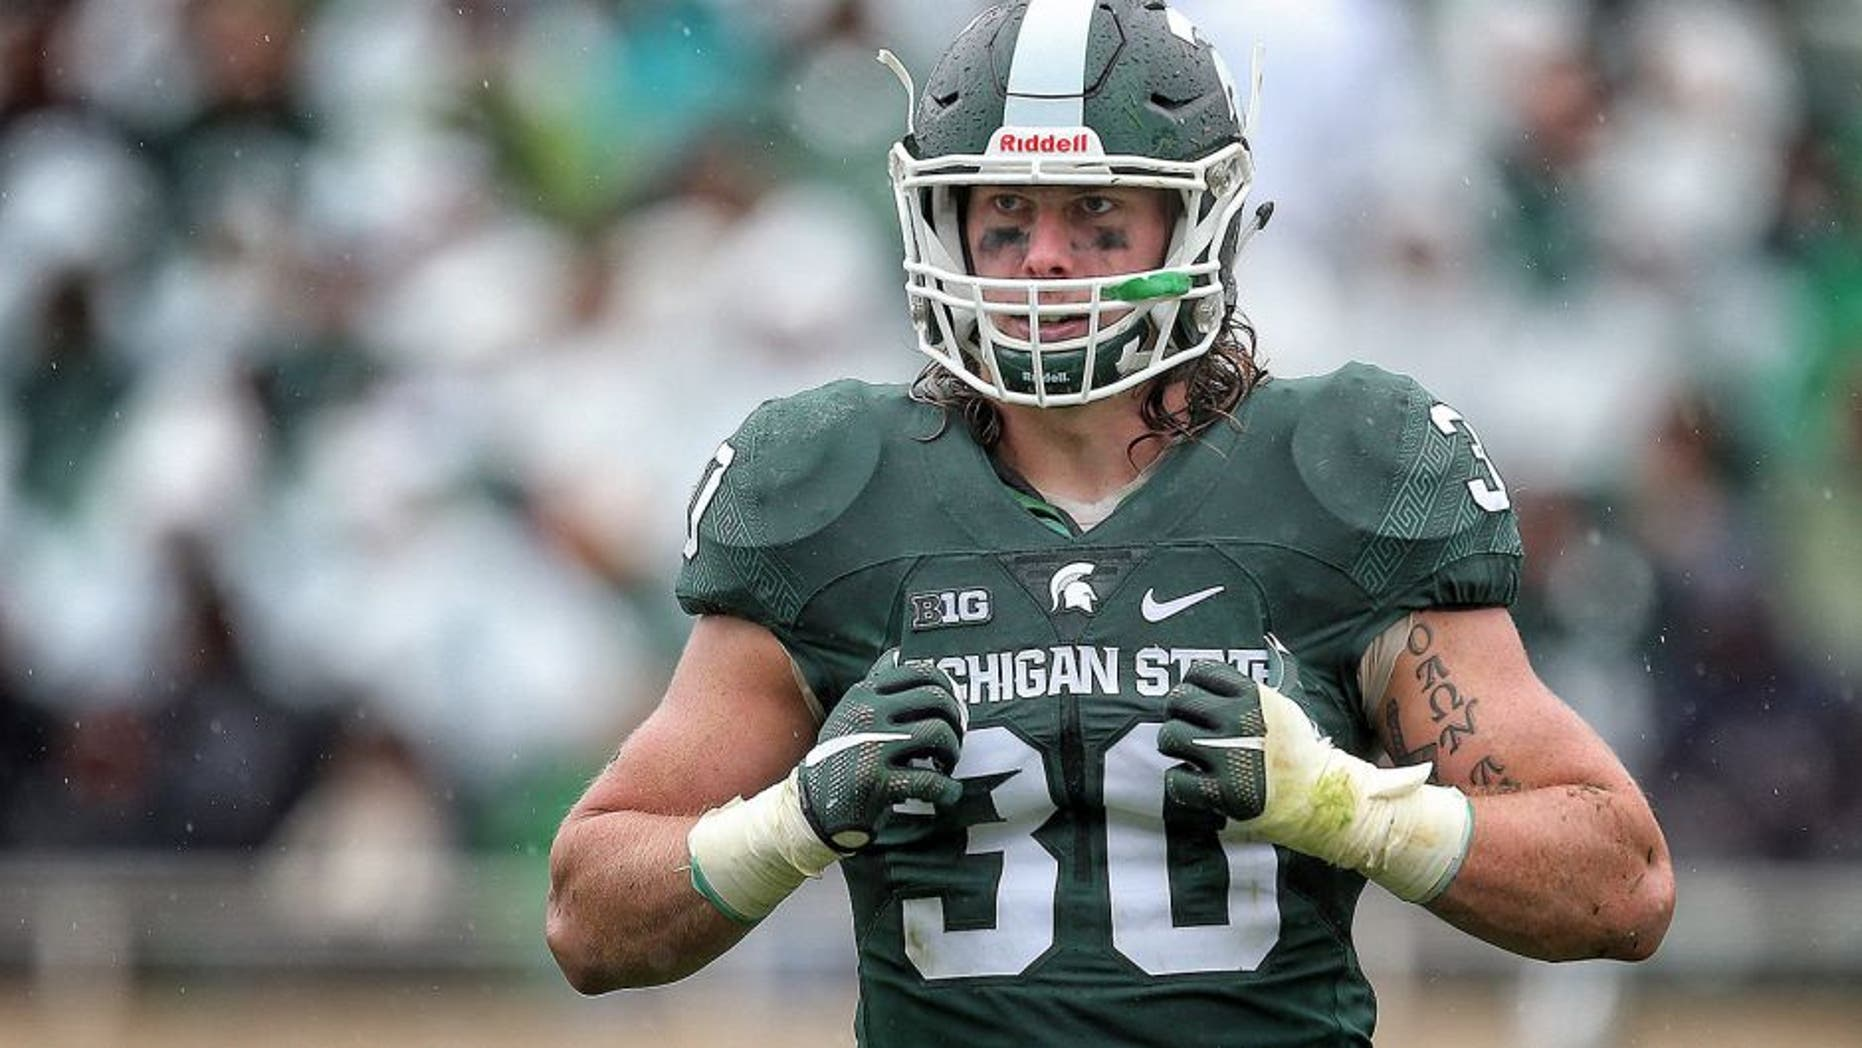 Oct 3, 2015; East Lansing, MI, USA; Michigan State Spartans linebacker Riley Bullough (30) looks to the sidelines during the 2nd half of a game against the Purdue Boilermakers at Spartan Stadium. MSU won 24-21. Mandatory Credit: Mike Carter-USA TODAY Sports